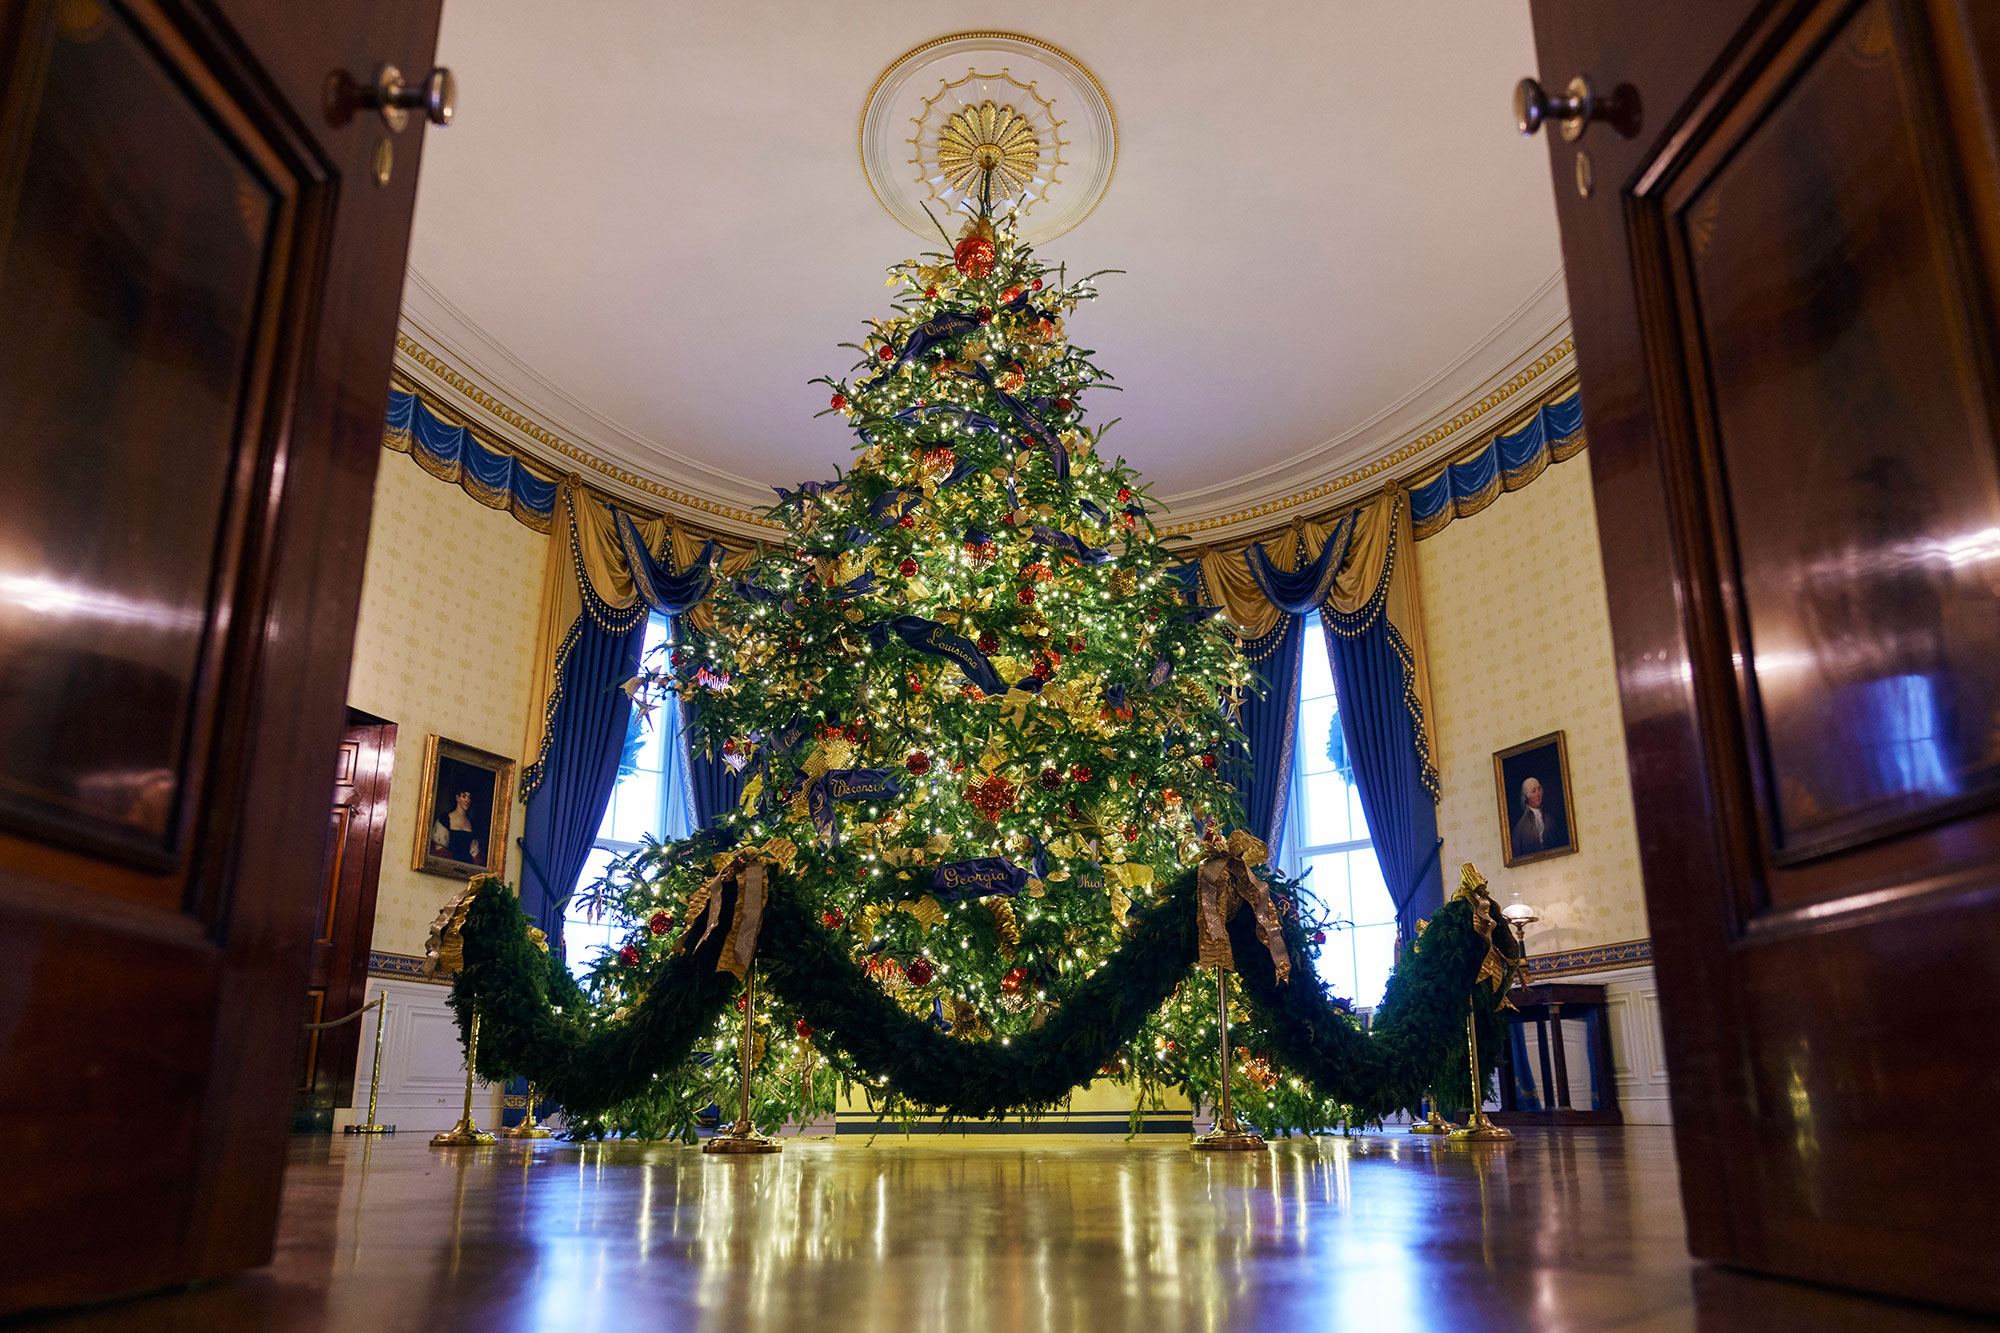 <div class='meta'><div class='origin-logo' data-origin='none'></div><span class='caption-text' data-credit='Carolyn Kaster/AP Photo'>The official White House Christmas tree is seen in the Blue Room during the 2018 Christmas Press Preview at the White House in Washington, Monday, Nov. 26, 2018.</span></div>